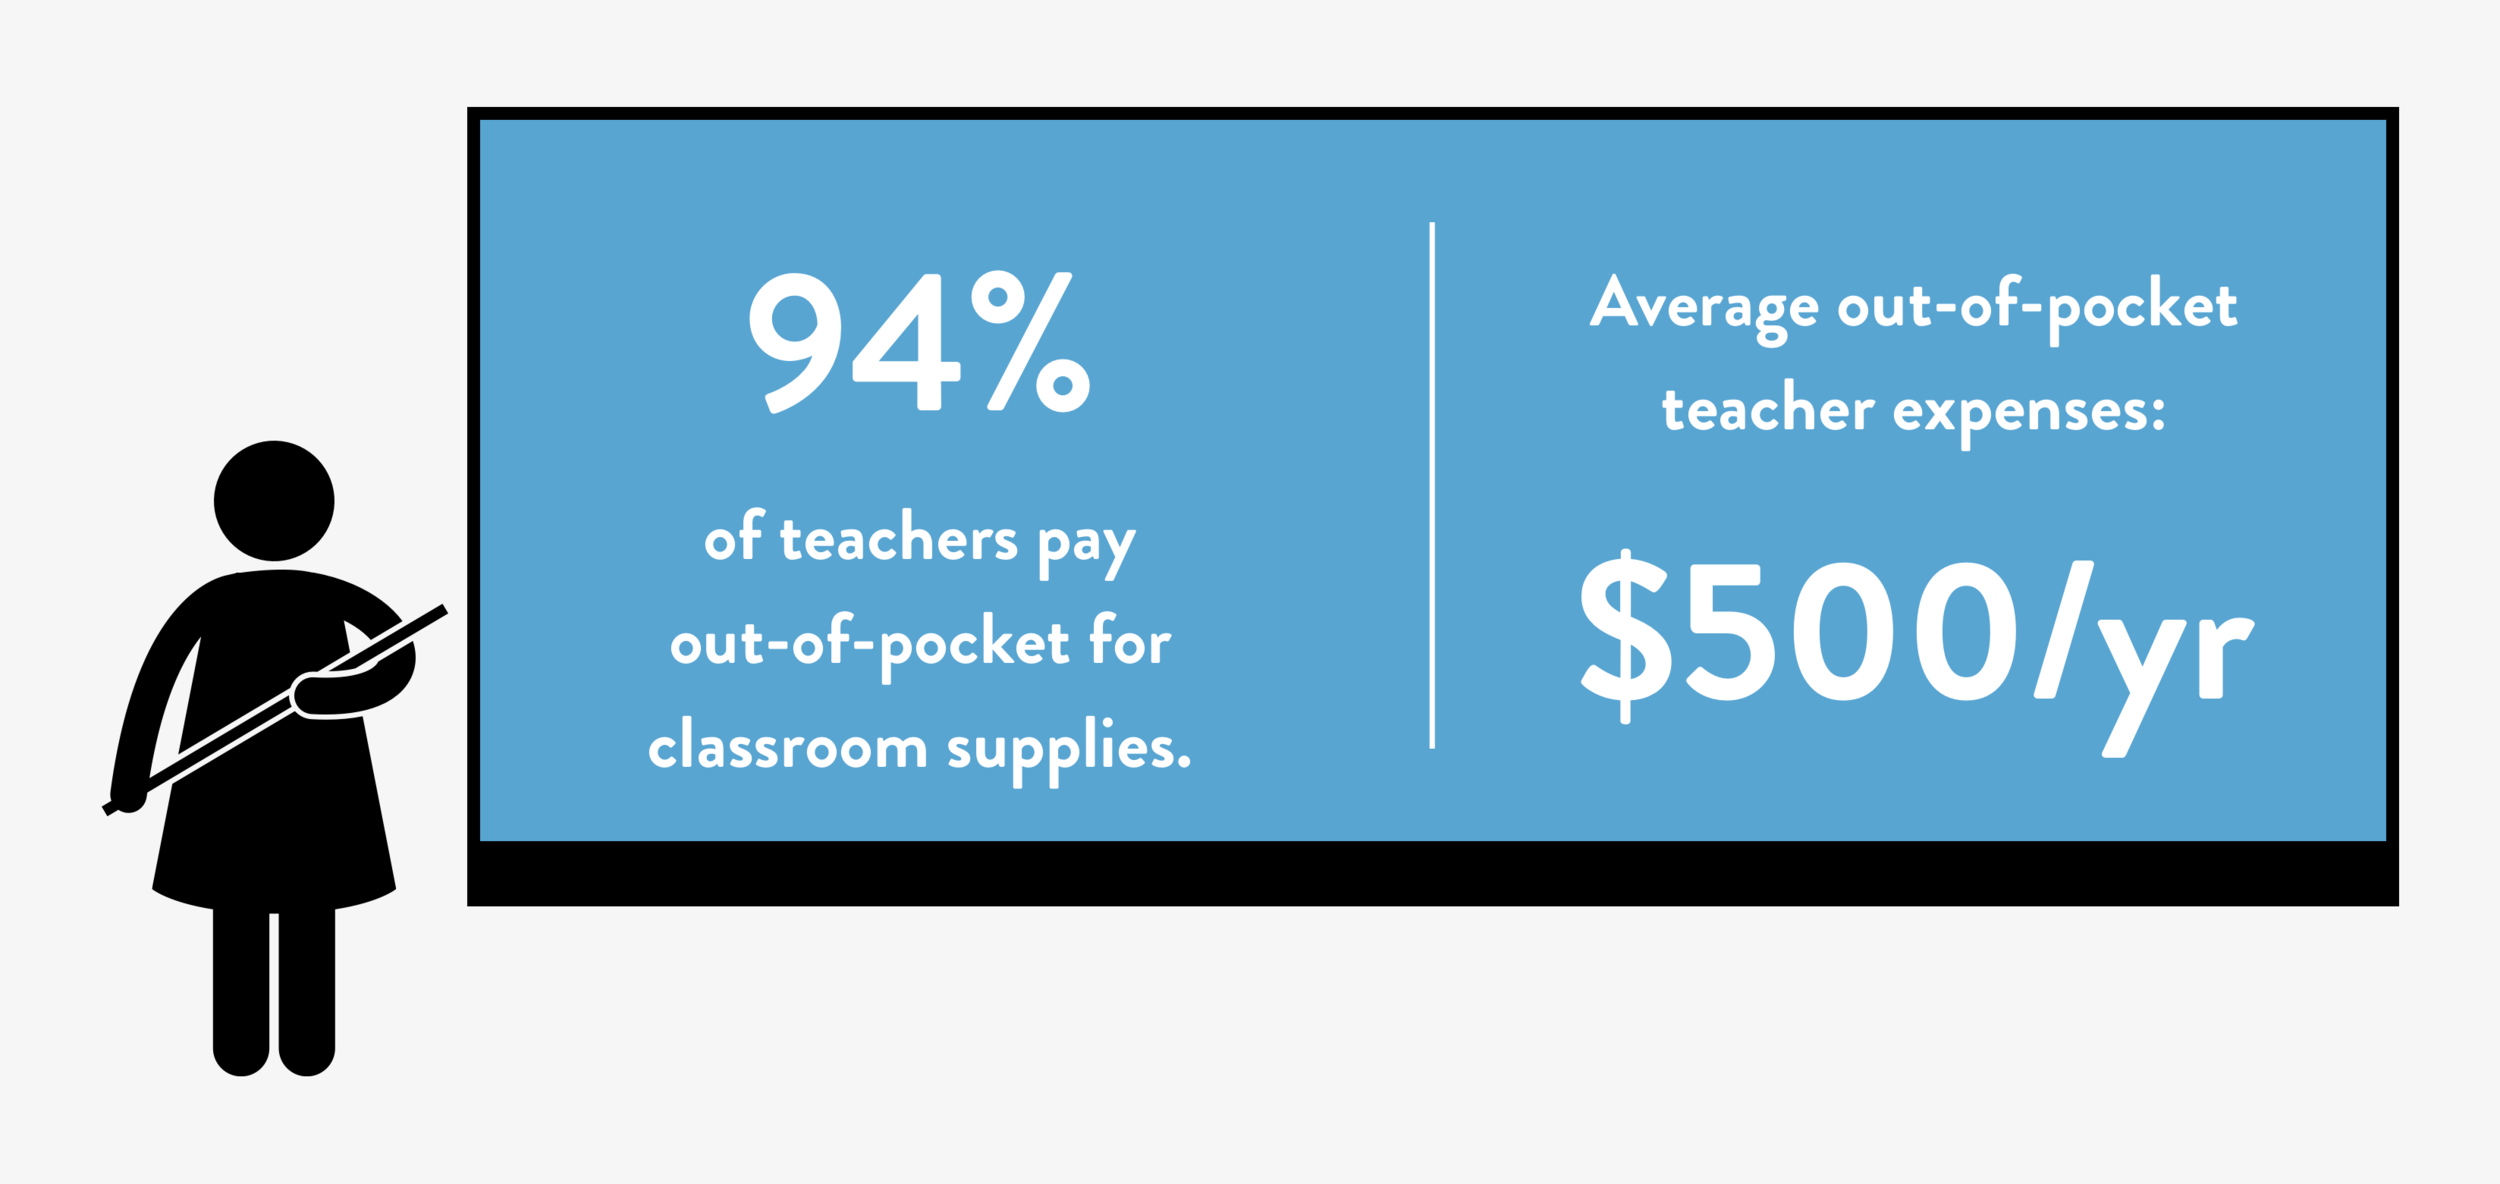 Our research taught us that teachers really do pay a lot out-of-pocket on classroom supplies.